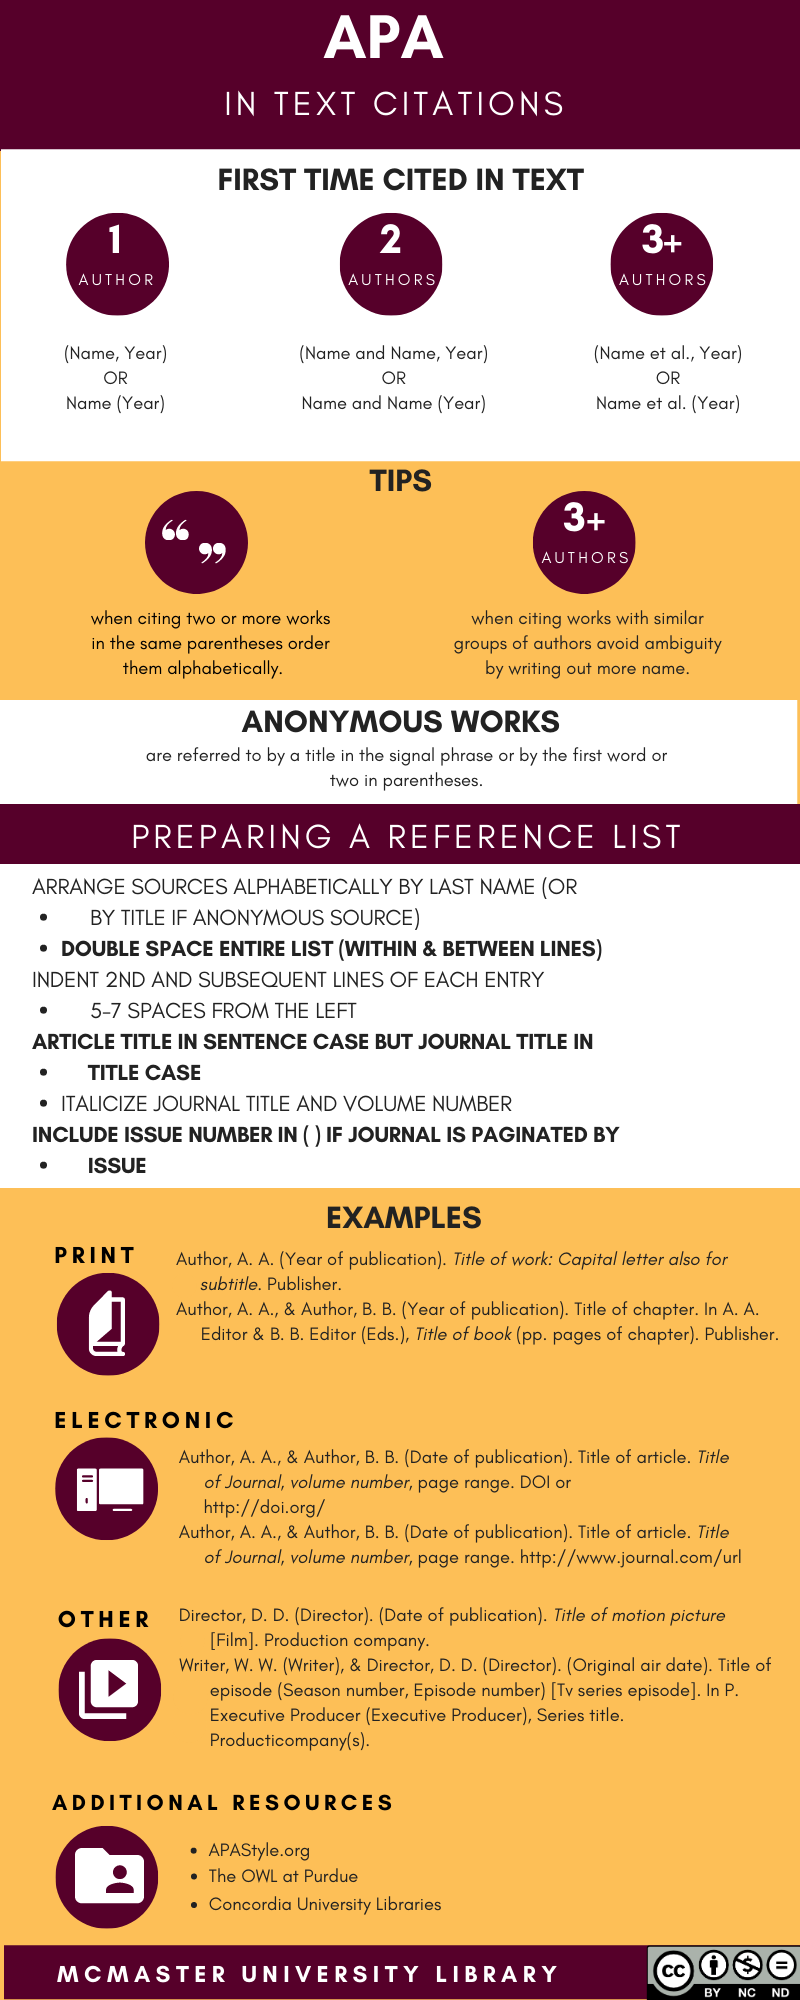 Graphic highlighting tips for APA in text citation